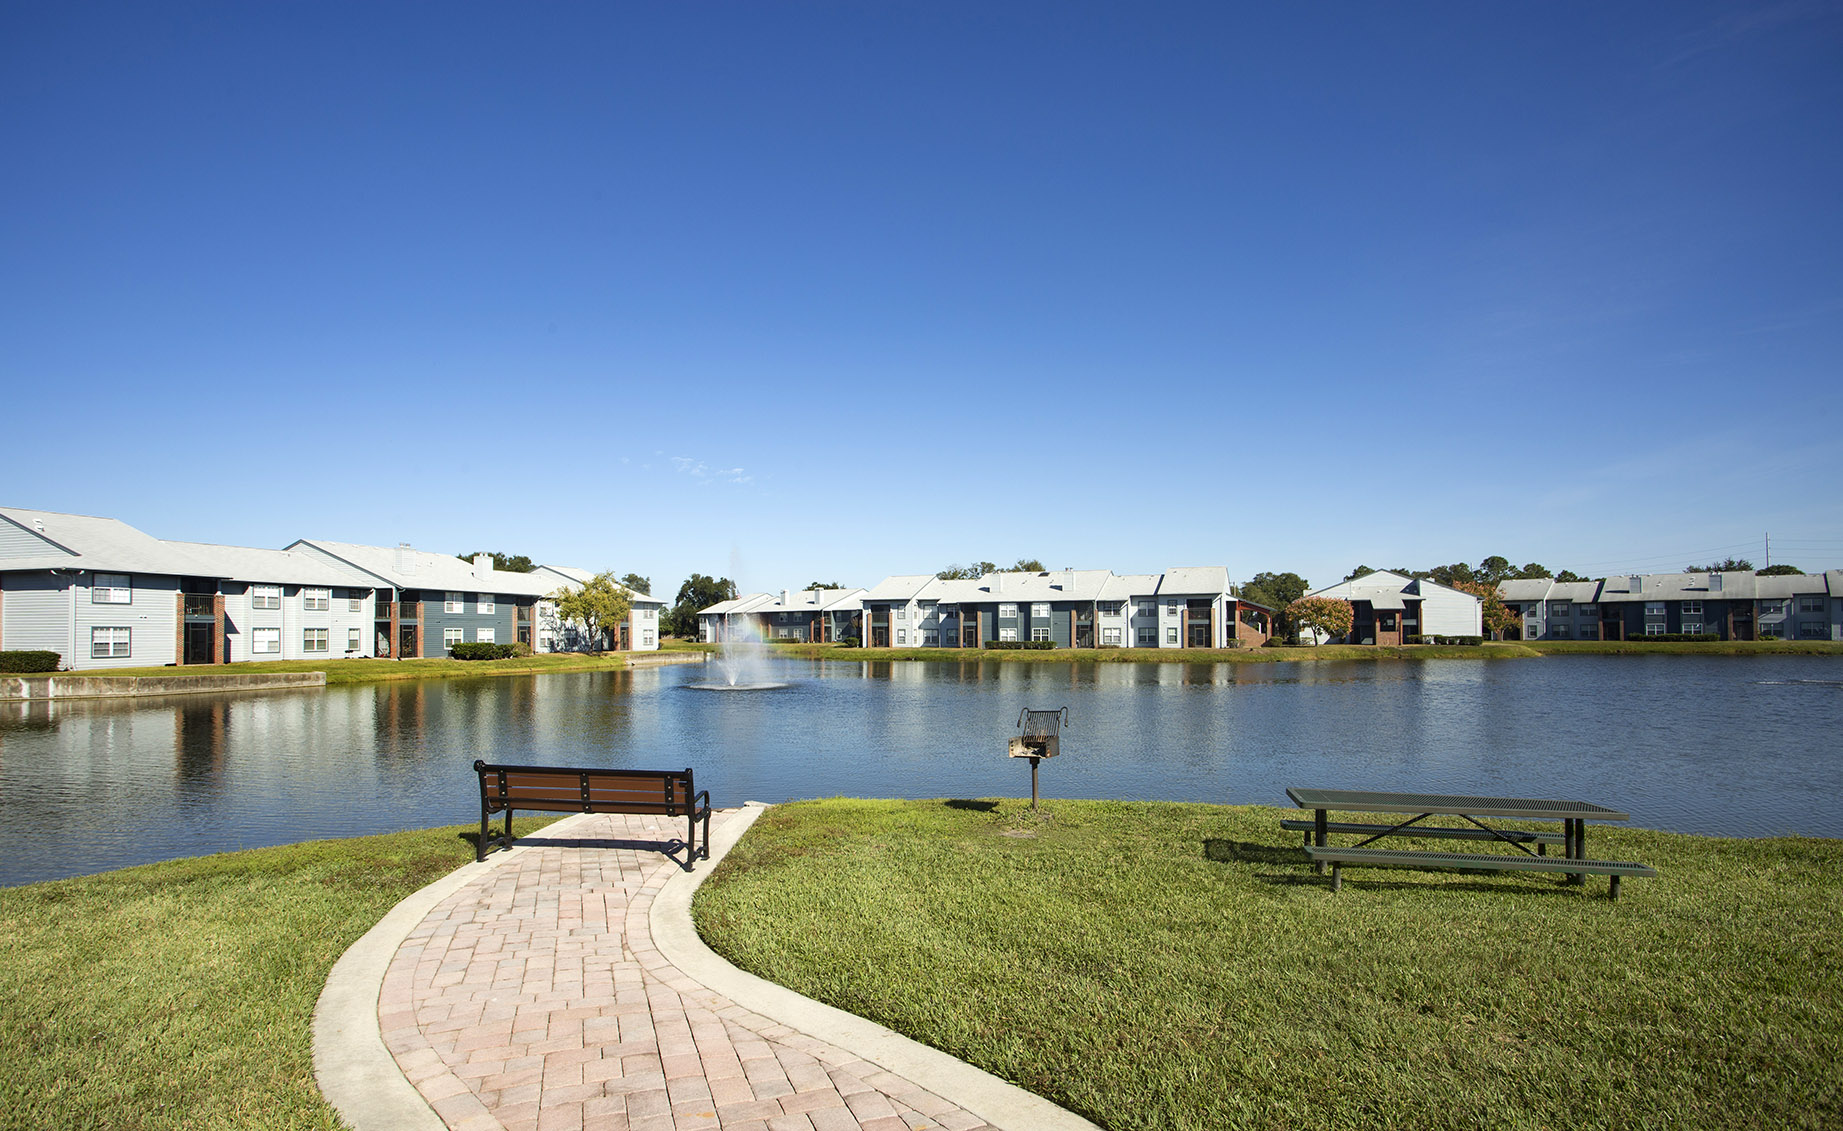 CharlestonLandings-Rental-Apartment-Brandon-Tampa-Florida-Exterior.jpg